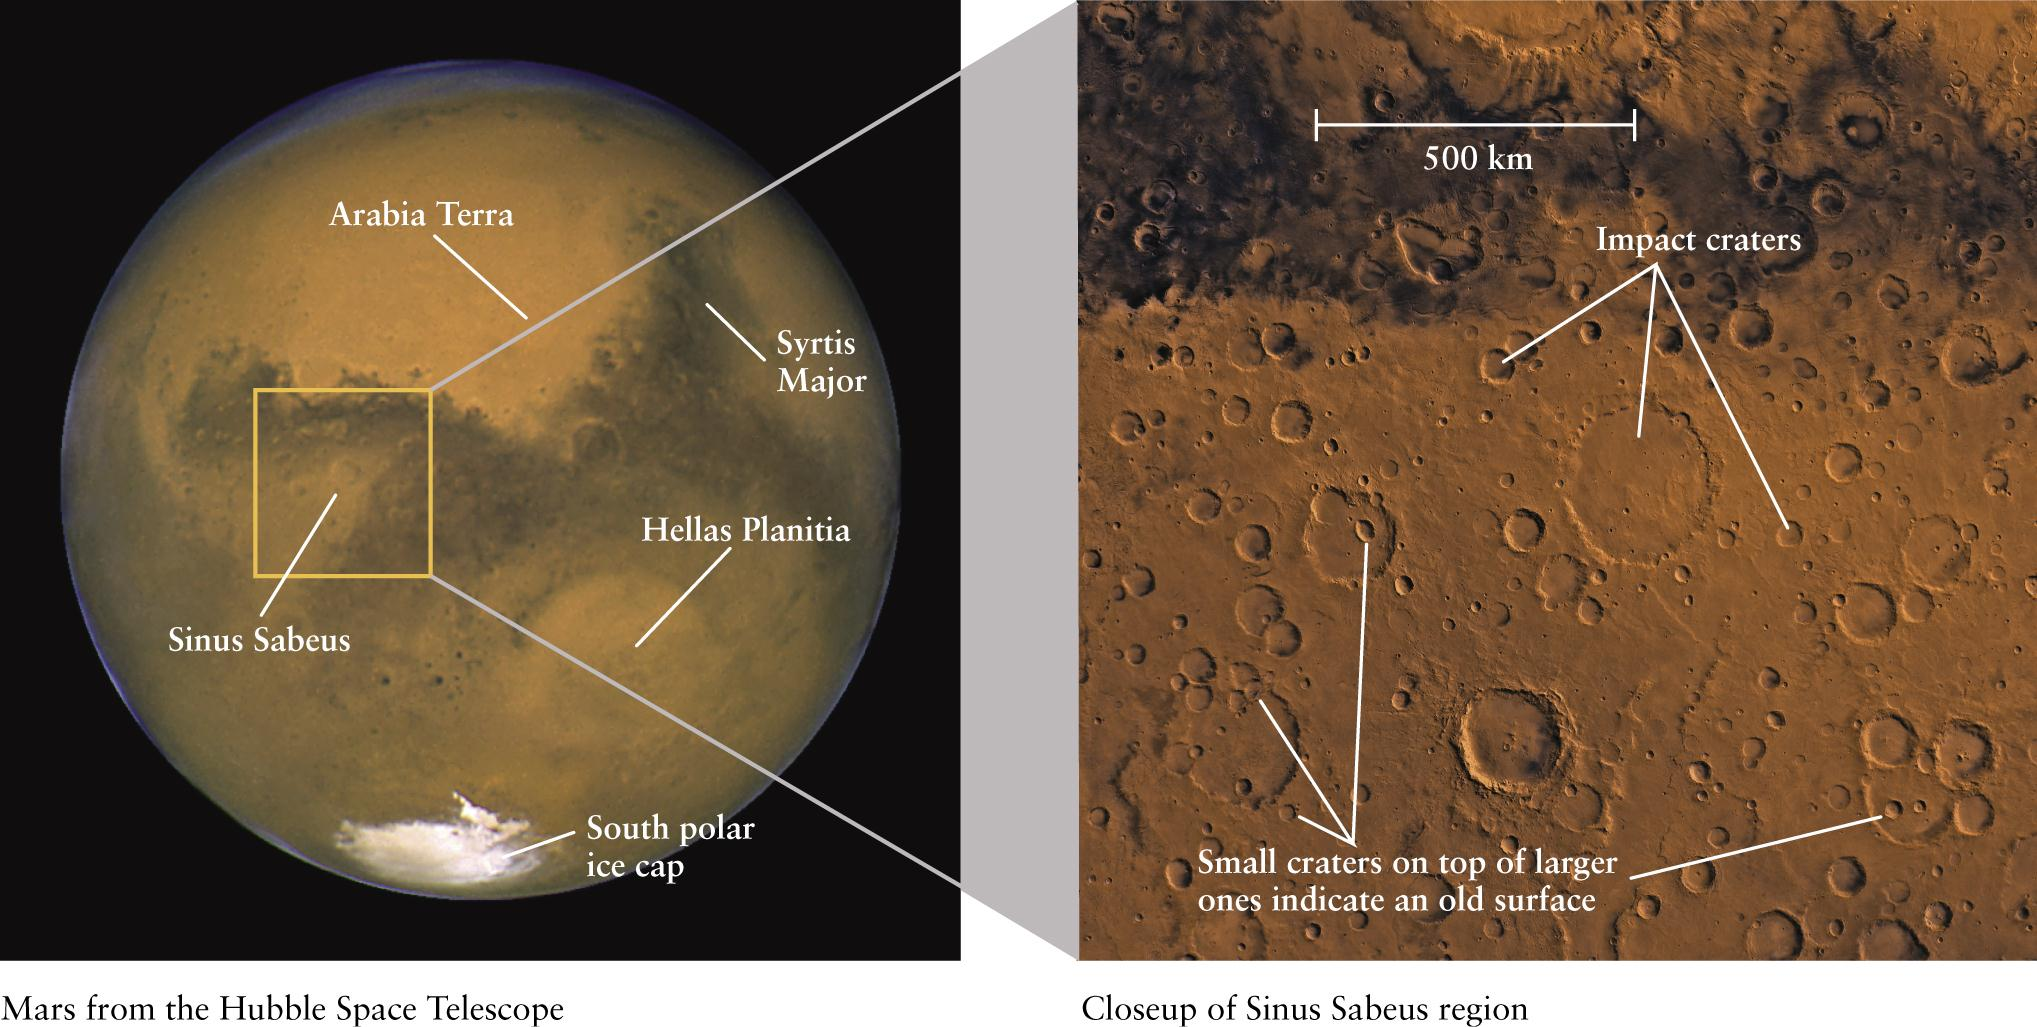 Impact Craters on Mars Most of these craters are found in the Southern